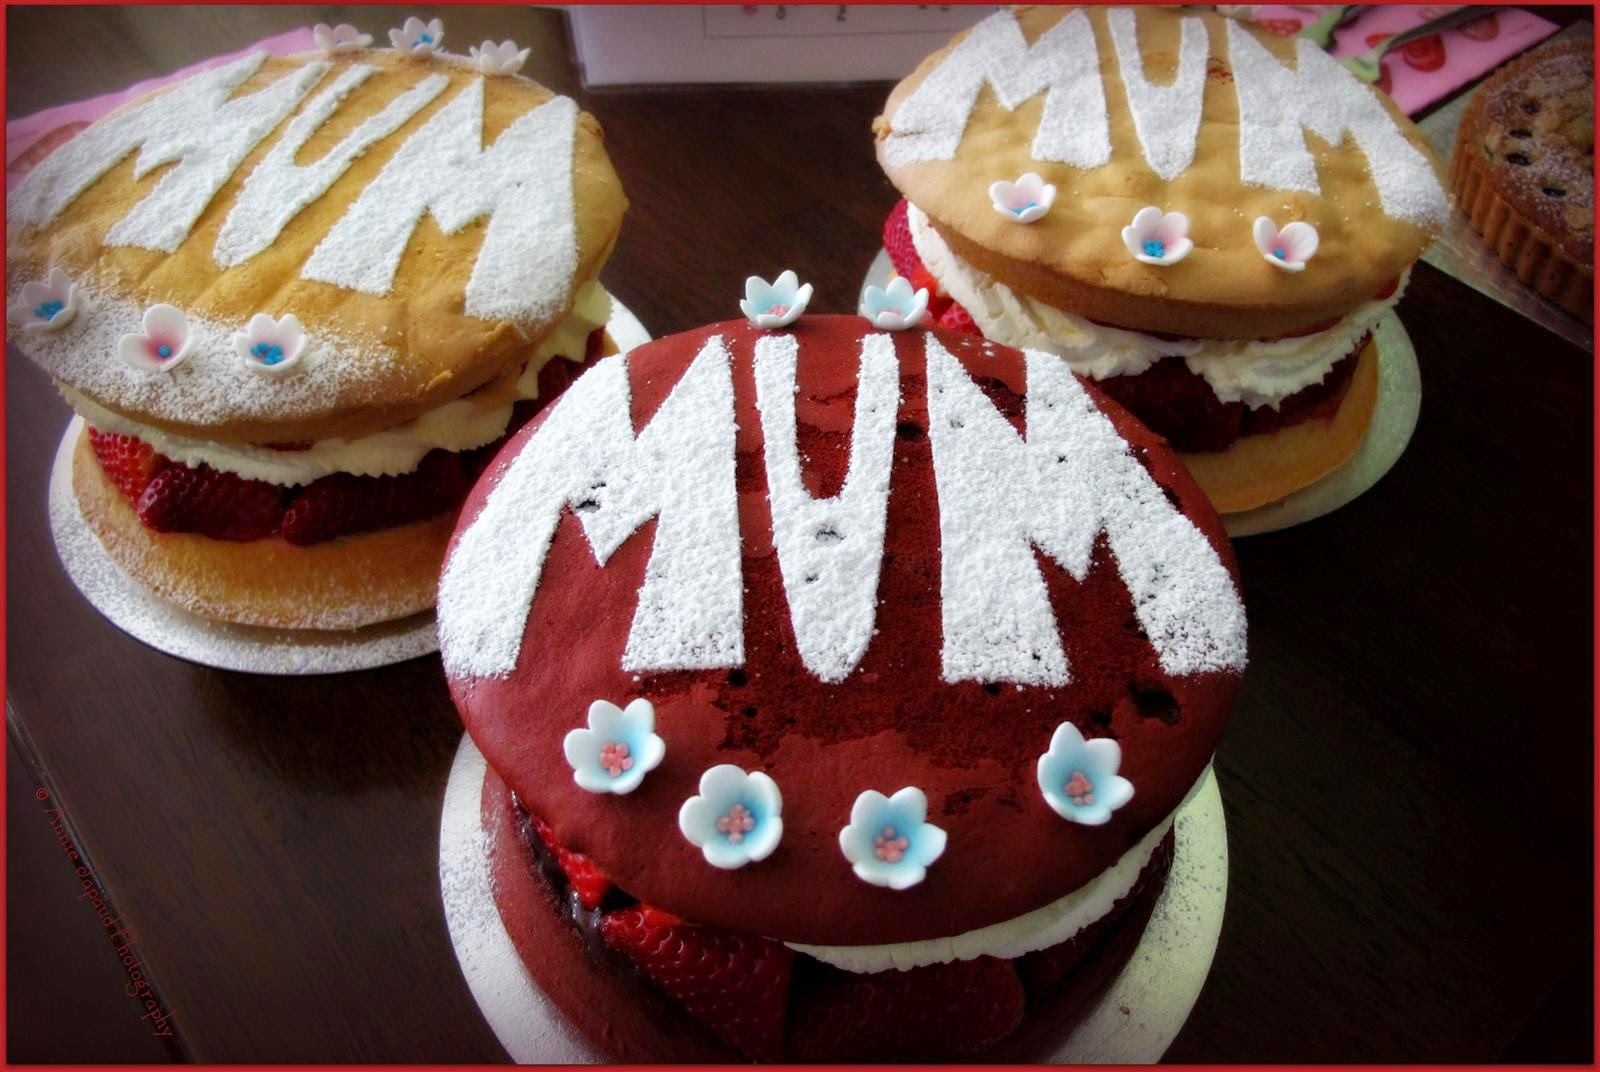 Victoria sponges decorated with flowers and mum written on top